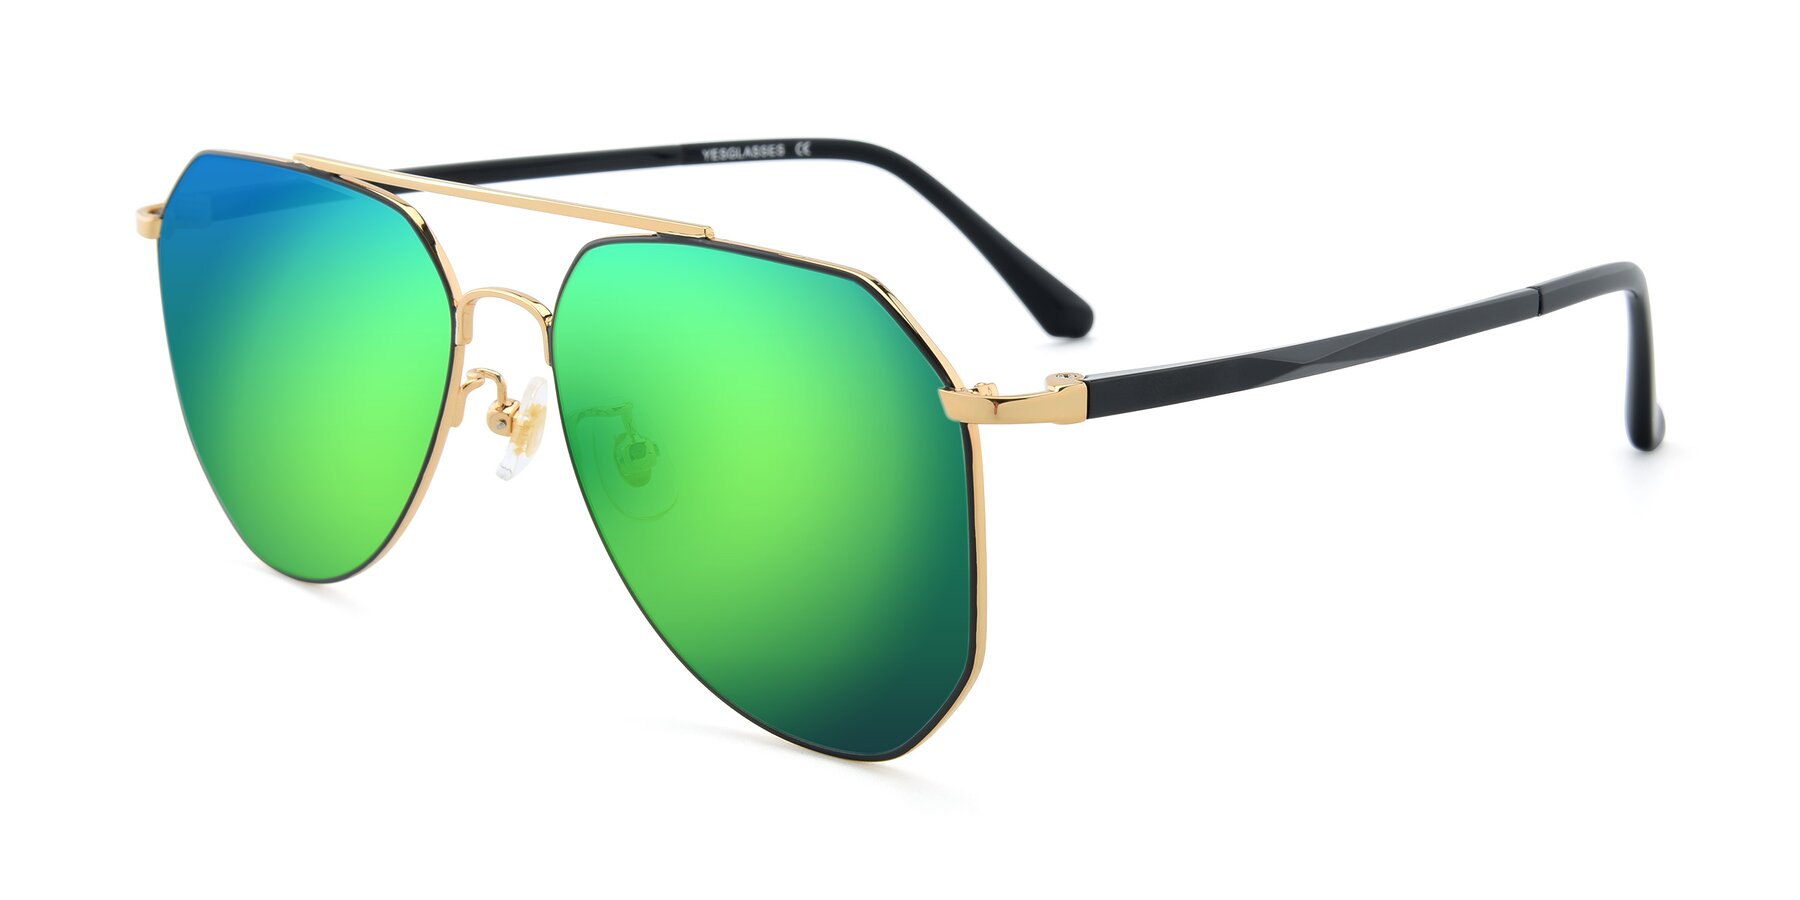 Angle of XC-8040 in Black/ Gold with Green Mirrored Lenses